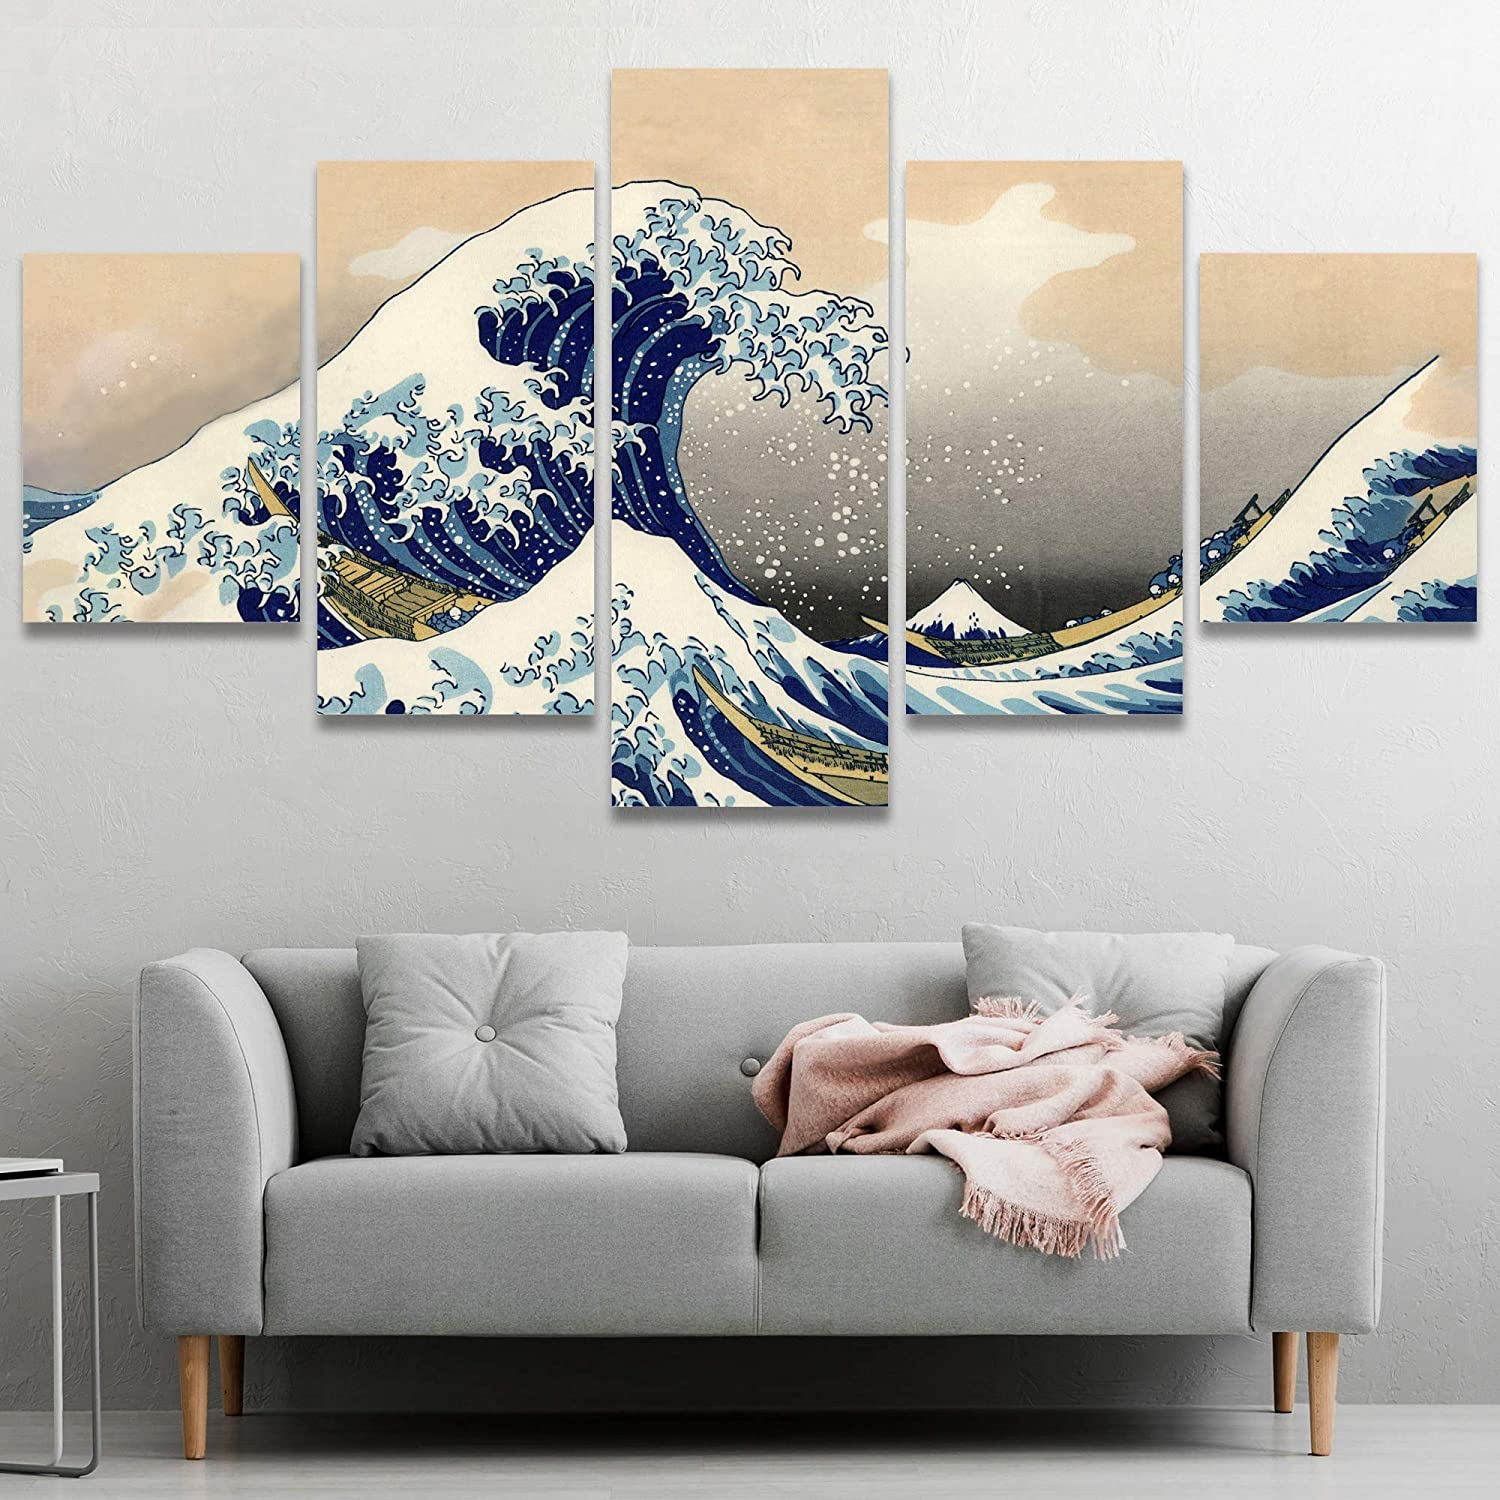 SIGNWIN 5 Panel SEAL limited Mail order product Canvas Wall Art The Kanagawa Off H Great Wave by